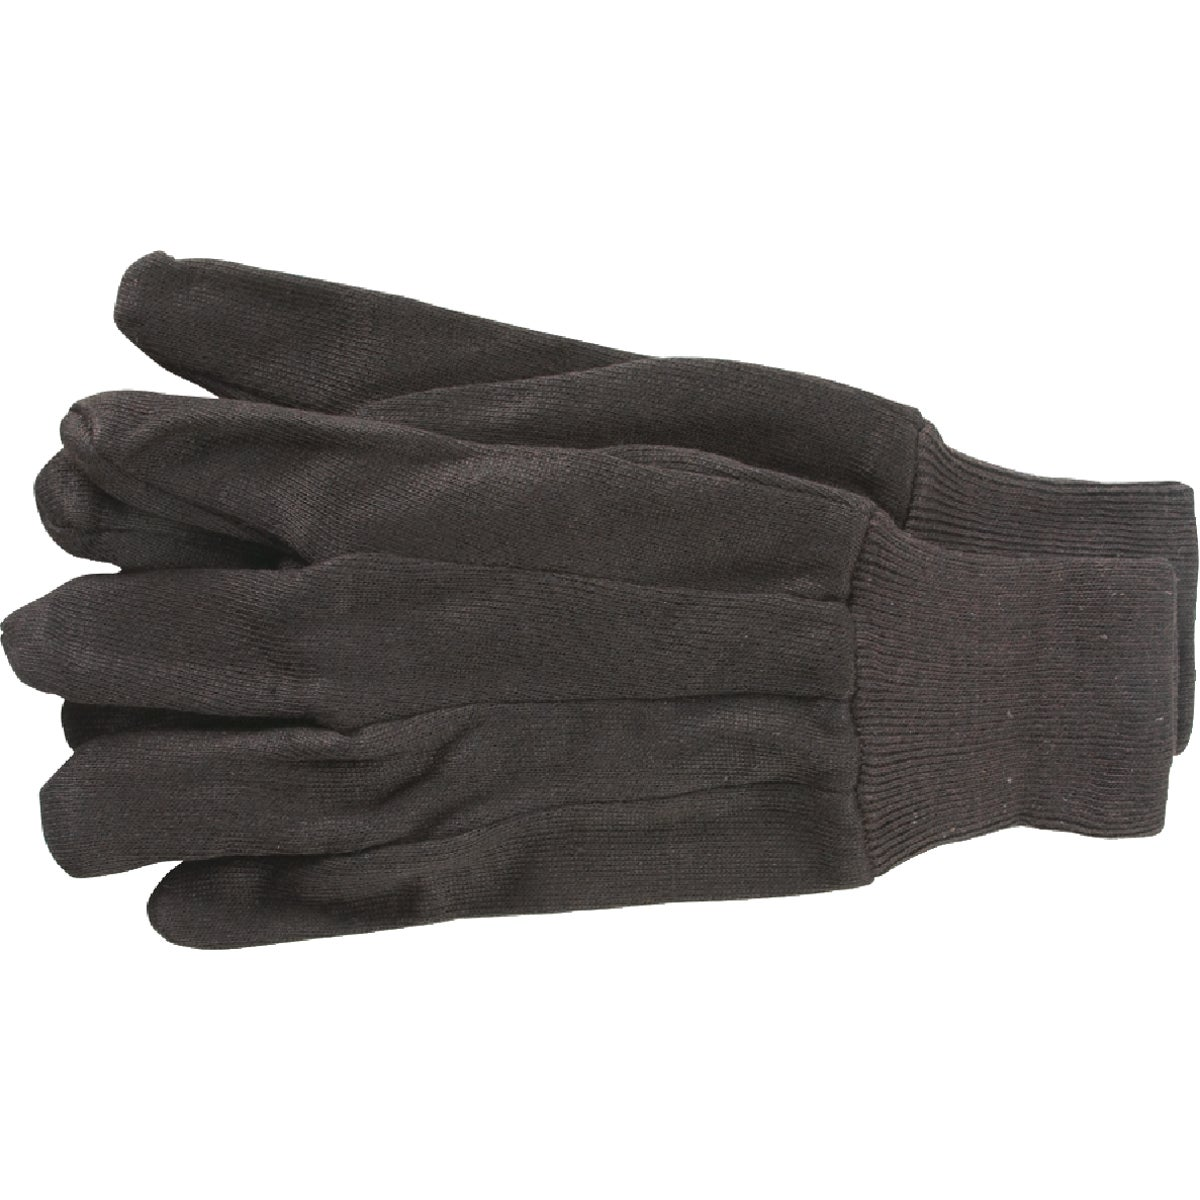 6PK JERSEY GLOVE - 738900 by Do it Best